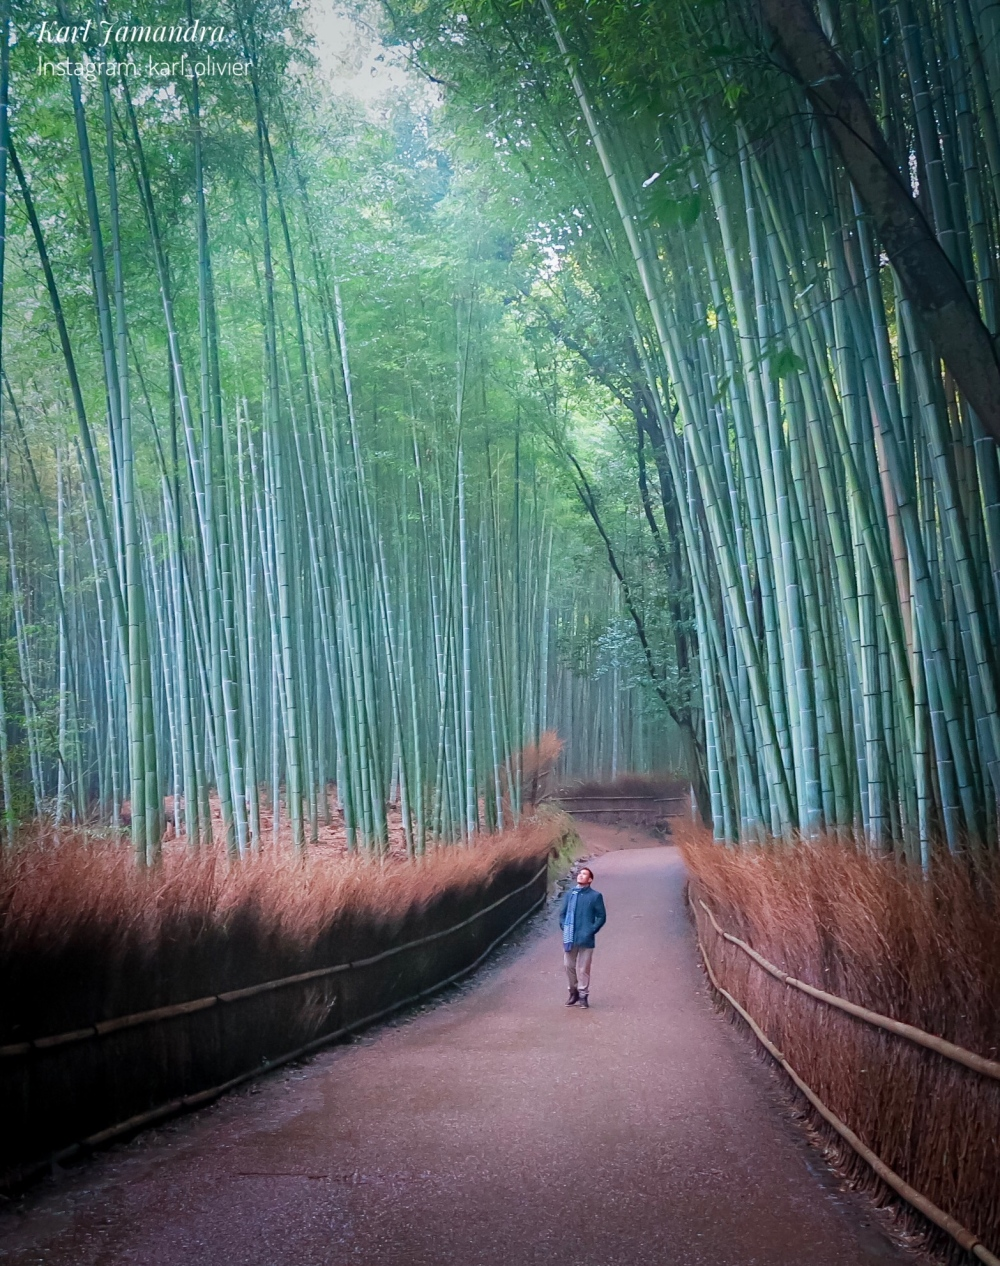 THE BEAUTIFUL ARASHIYAMA BAMBOO GROVE